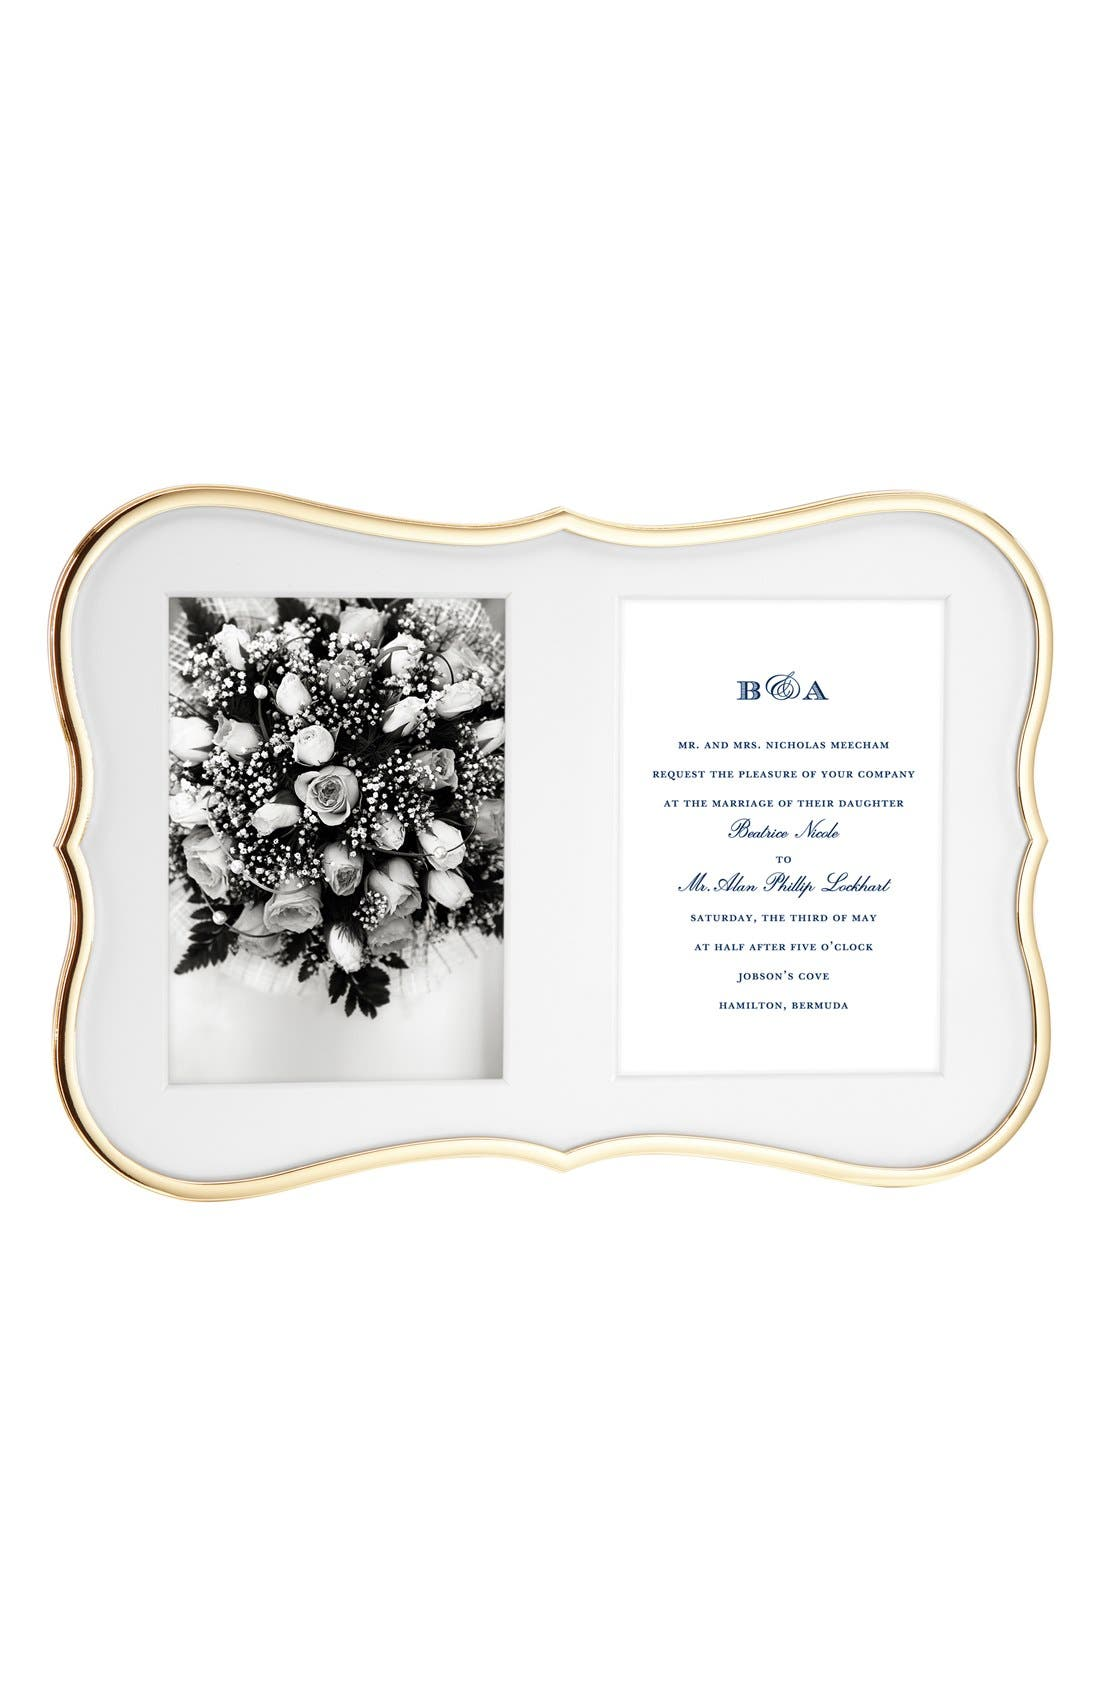 kate spade new york 'crown point' invitation bridal picture frame